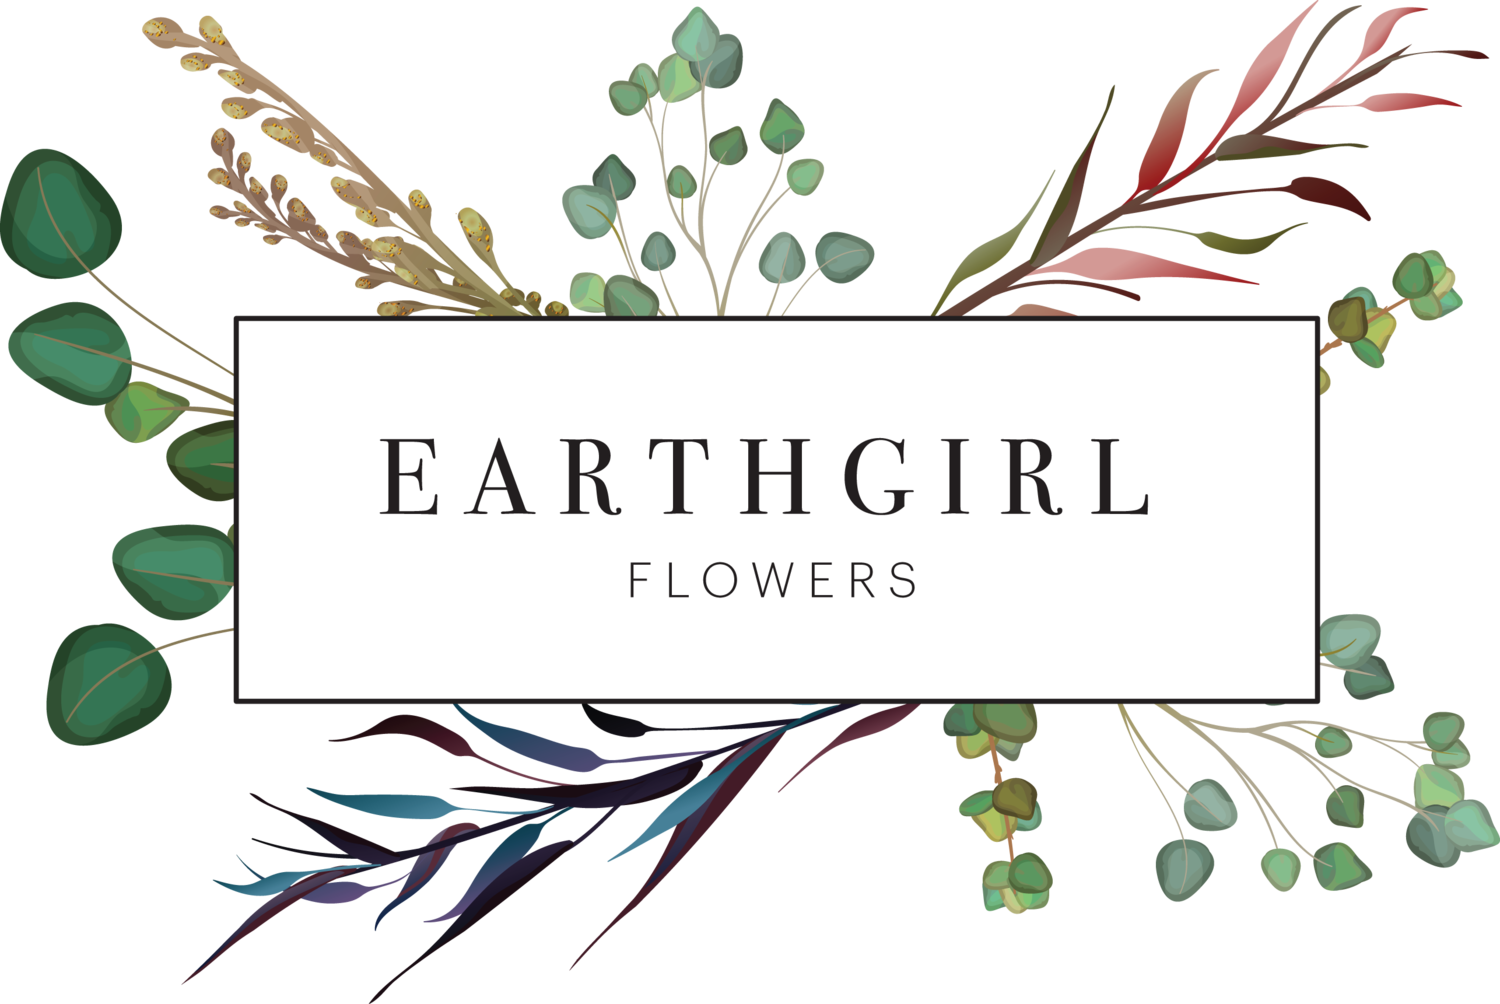 Earthgirl Flowers